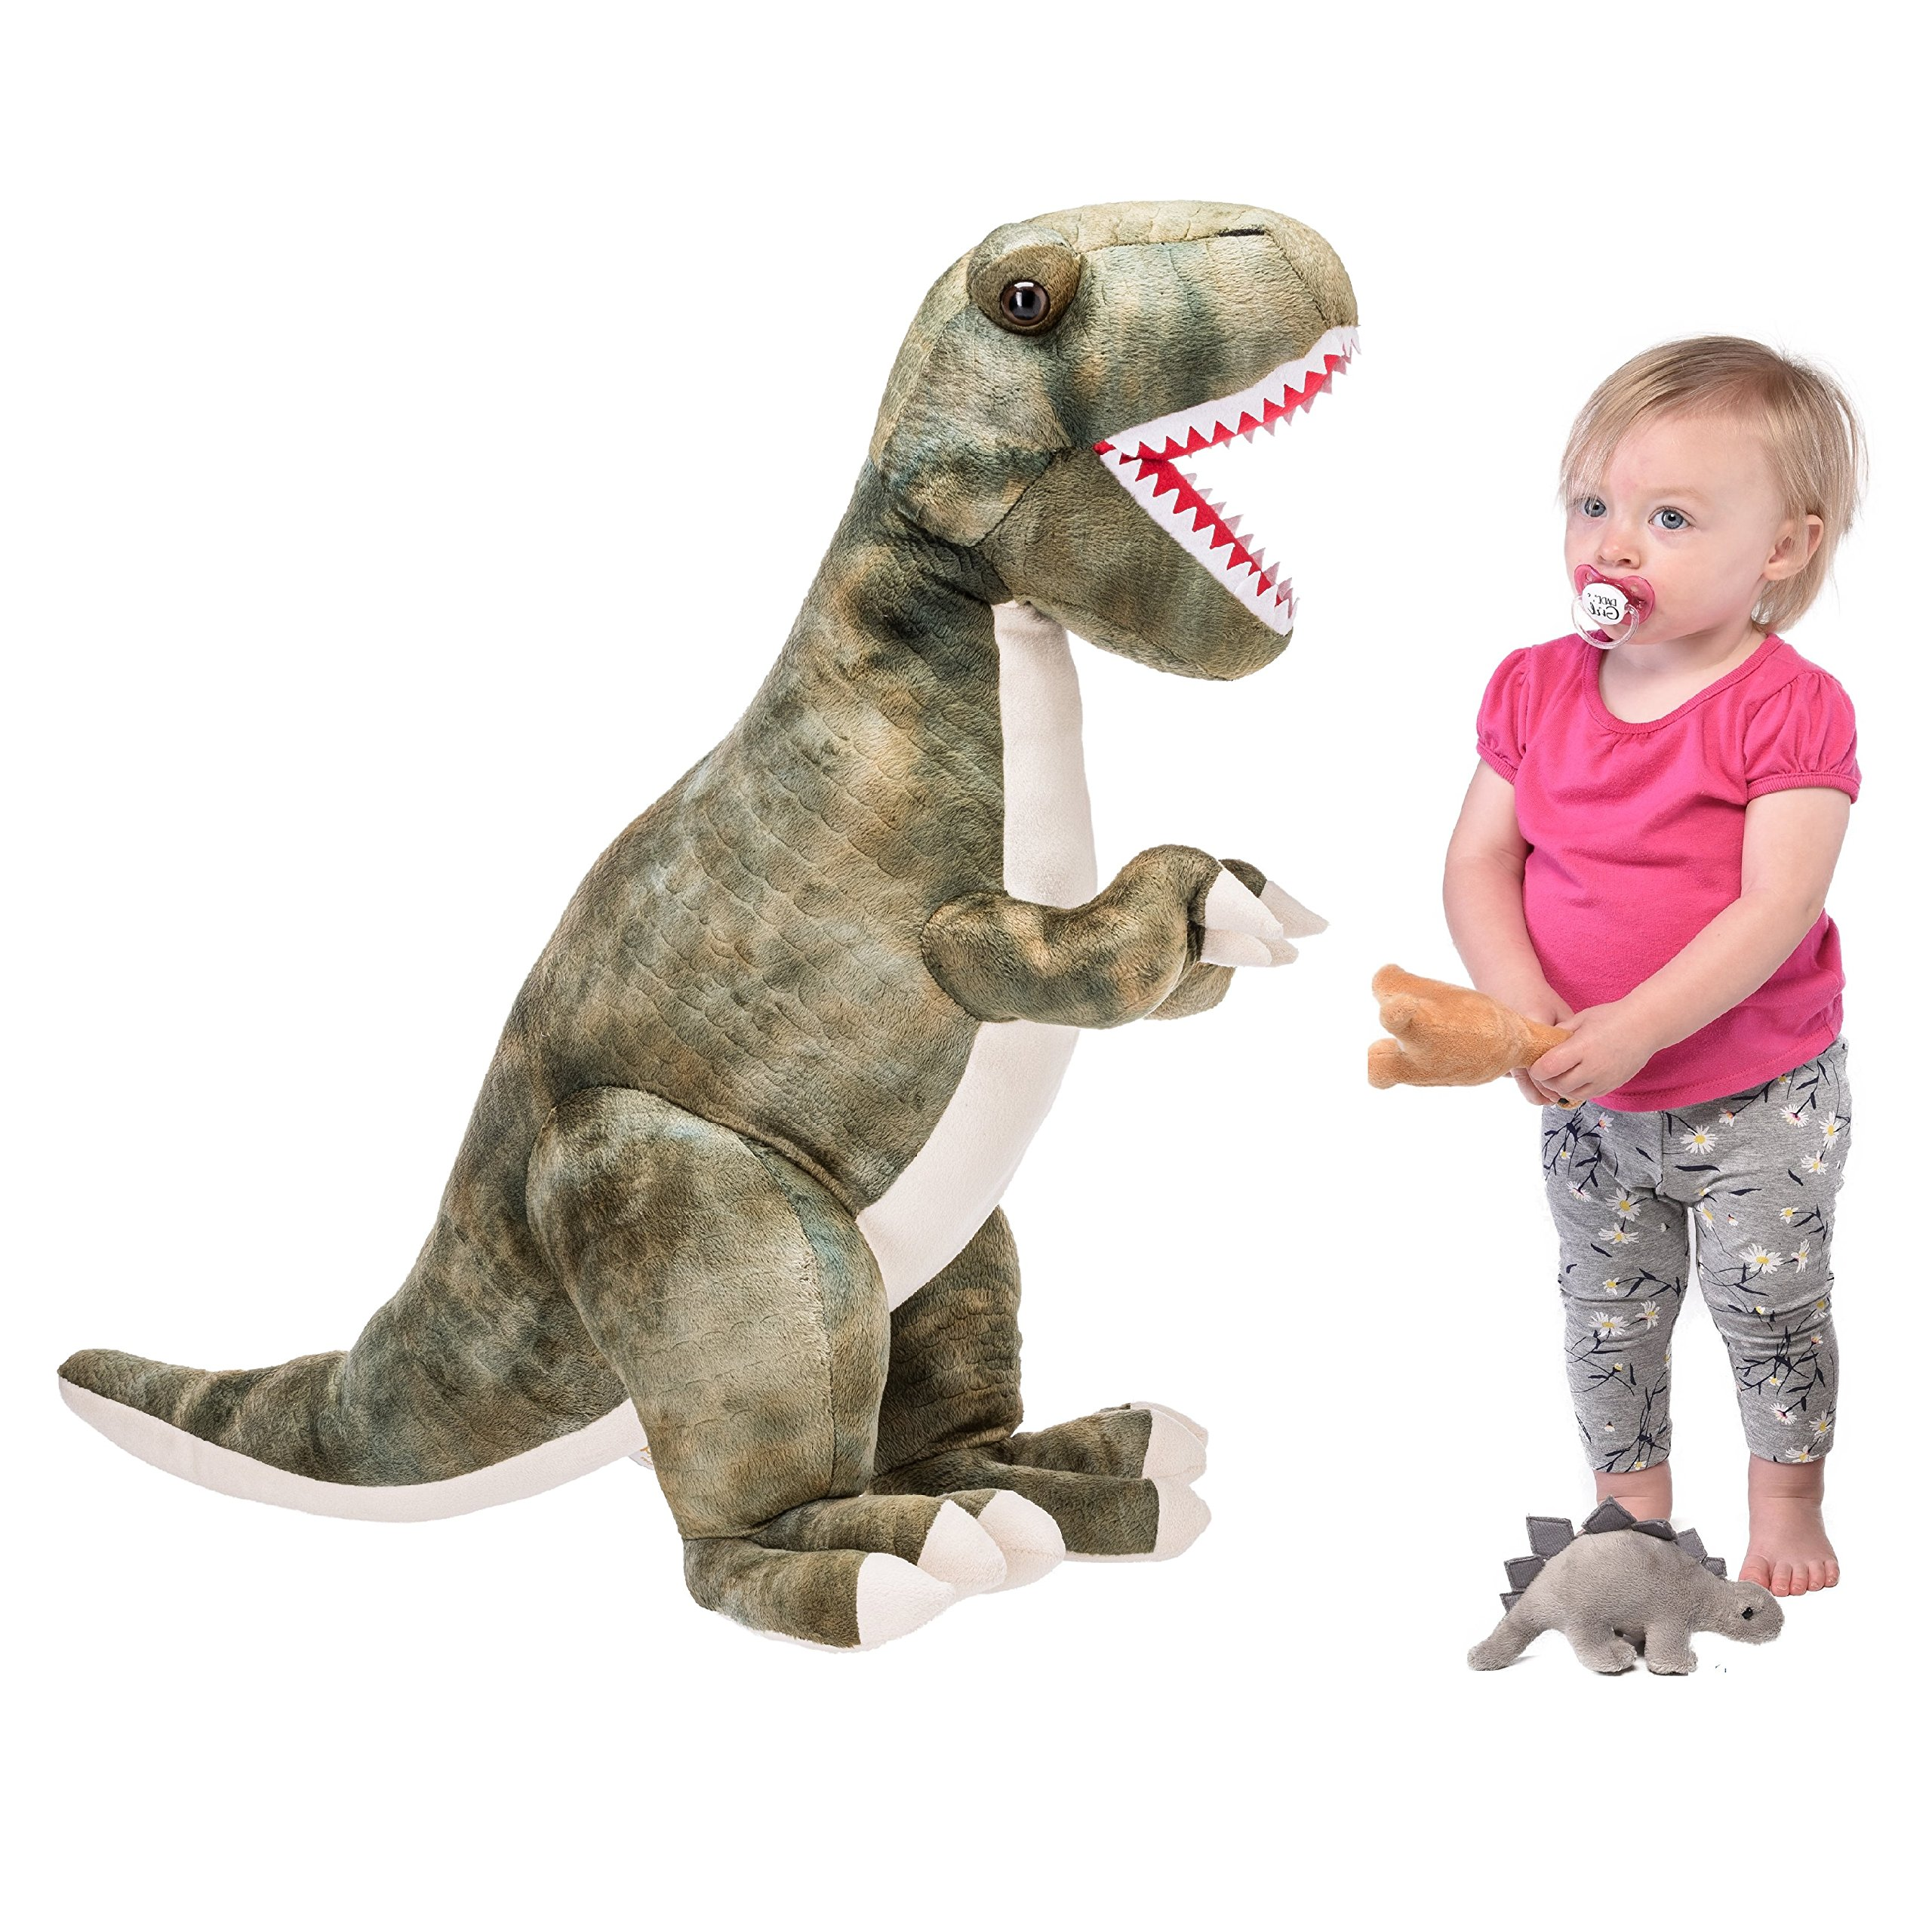 Prextex 24'' Giant Plush Dinosaur T-Rex Jumbo Cuddly Soft Dinosaur Toys for Kids by Prextex